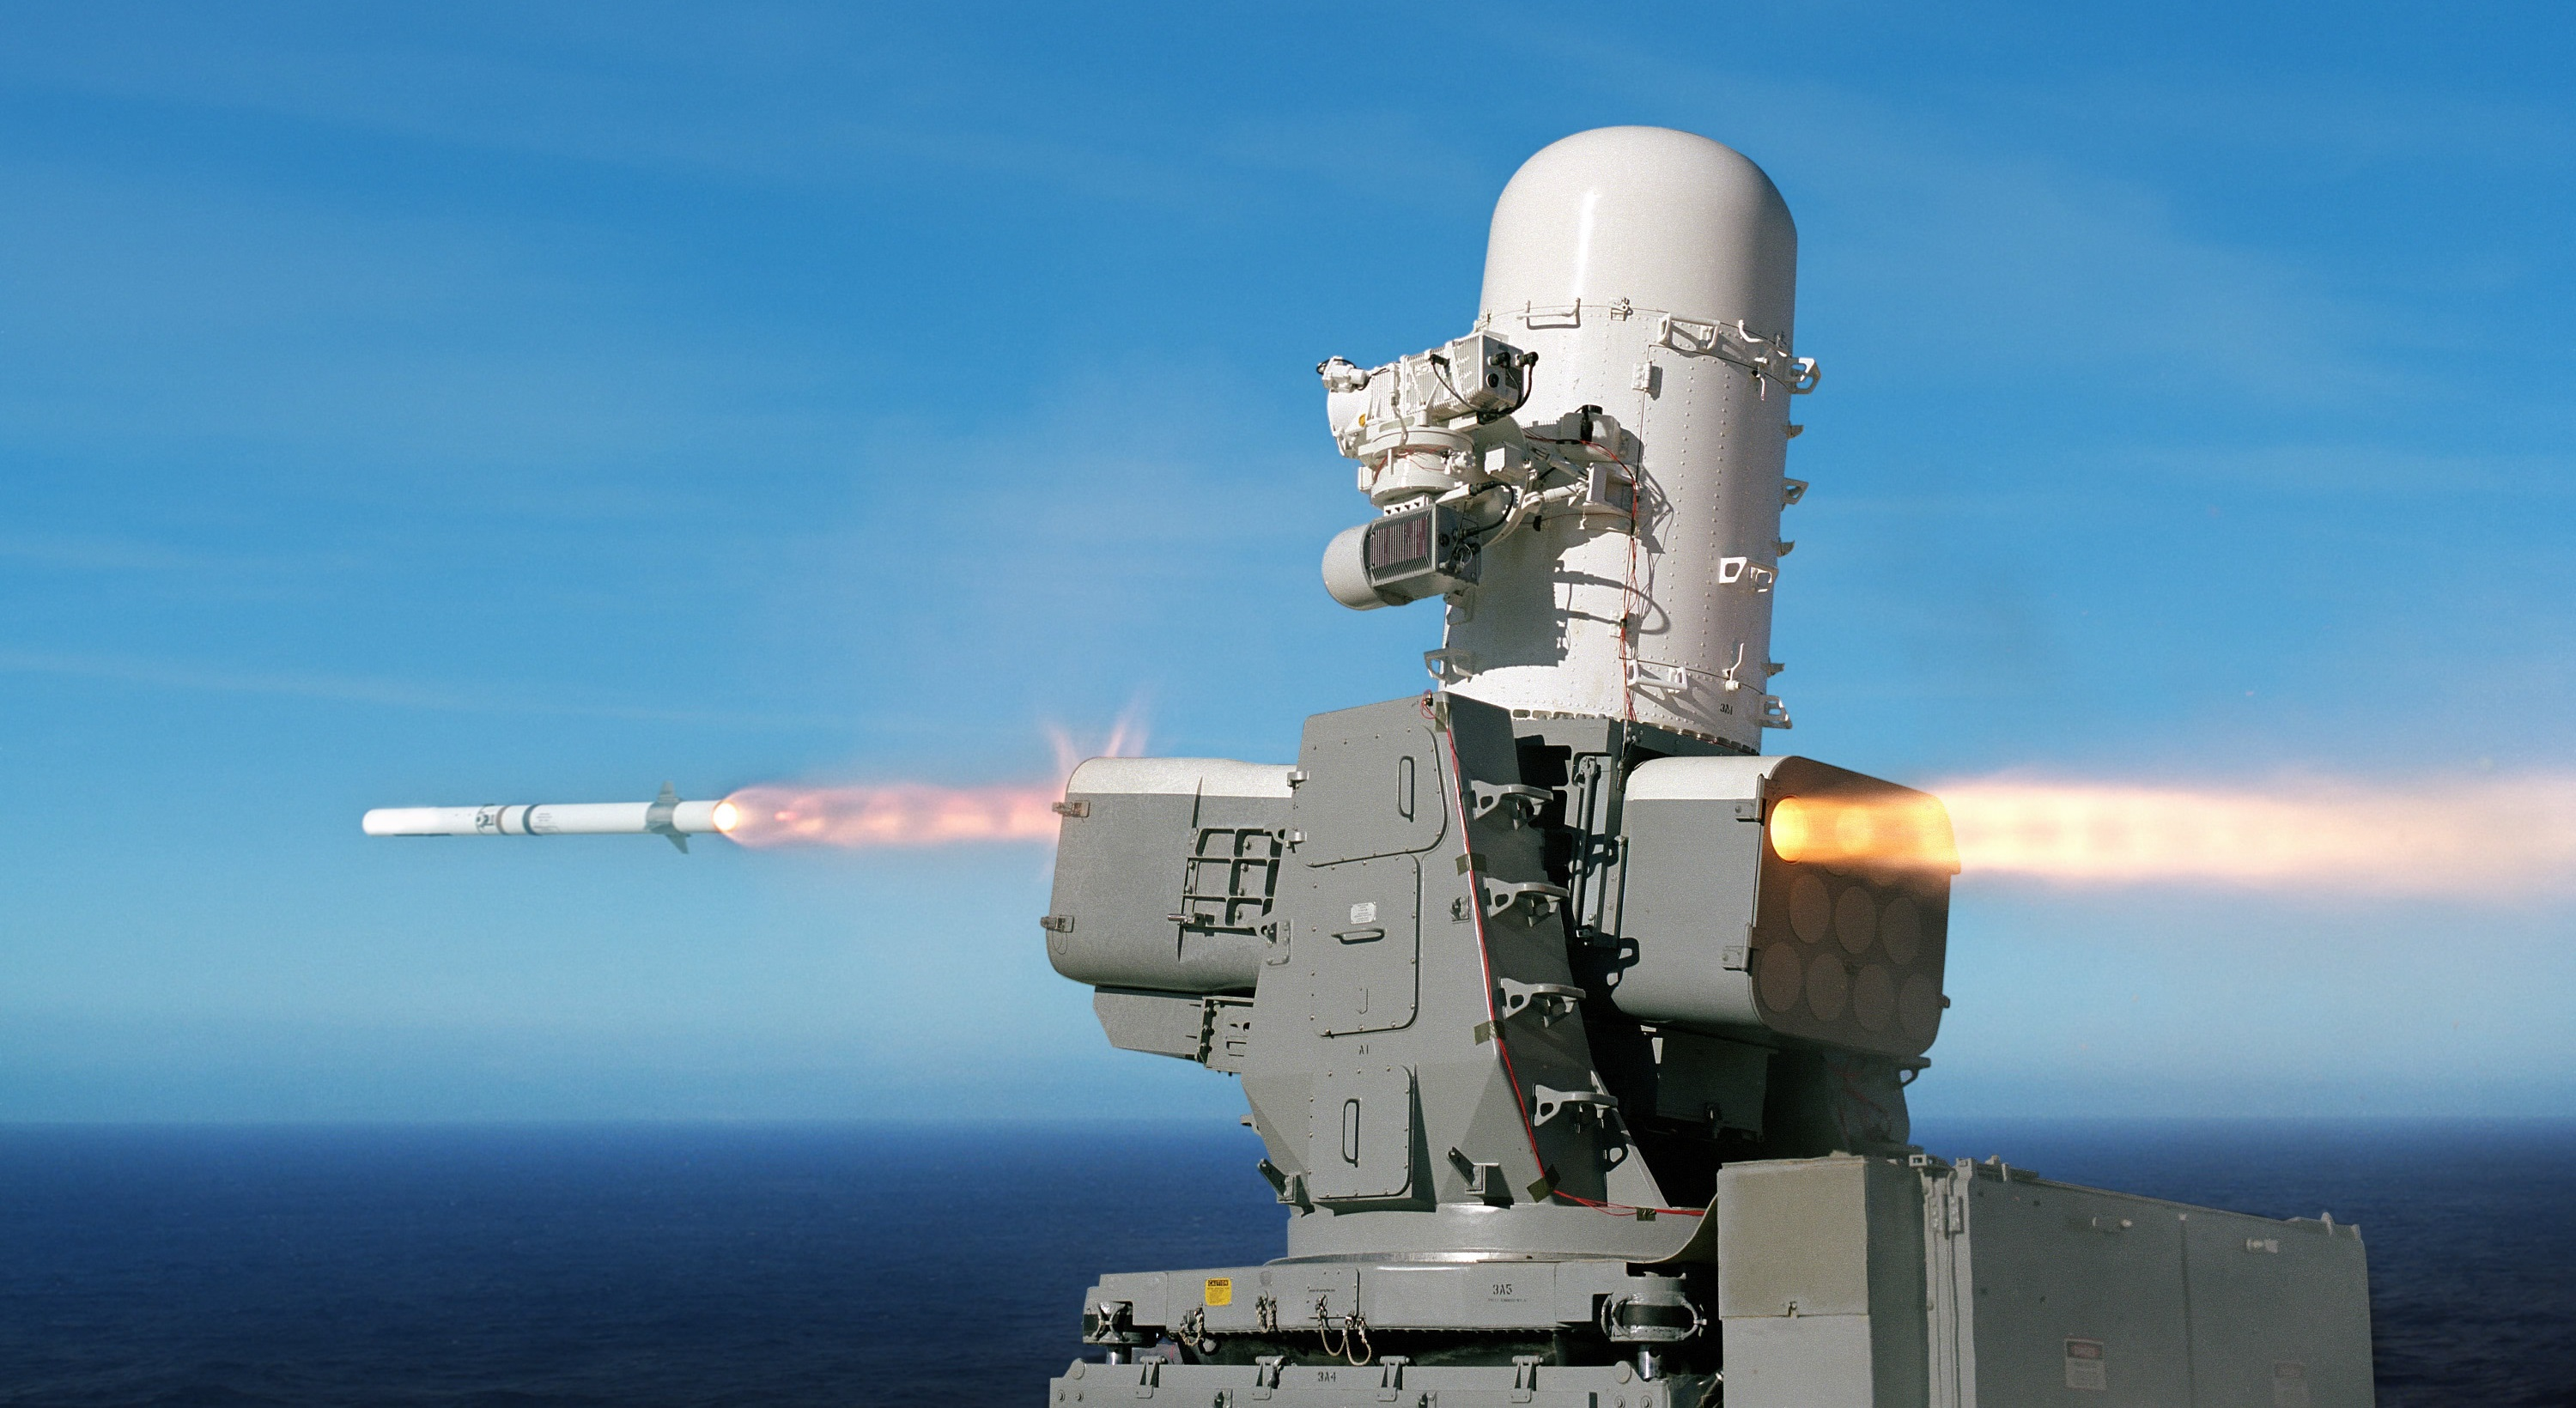 The U.S. Navy's Supersonic SeaRAM Missile System Could be a Game ChangerThe U.S. Navy's Supersonic SeaRAM Missile System Could be a Game Changer